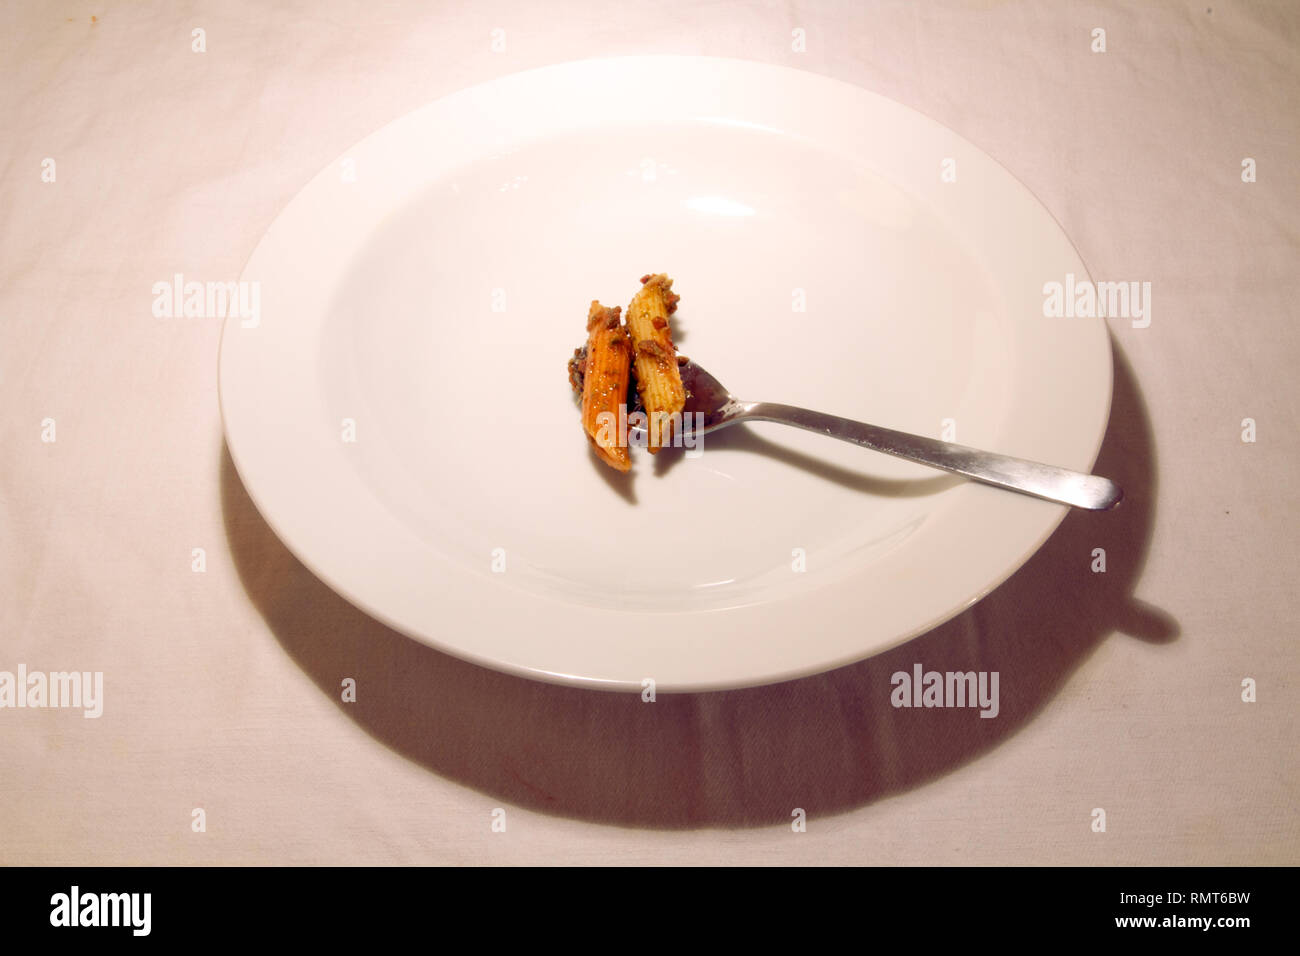 Dubai-Penne pasta cooked with sauce served on a white plate 11 - Stock Image